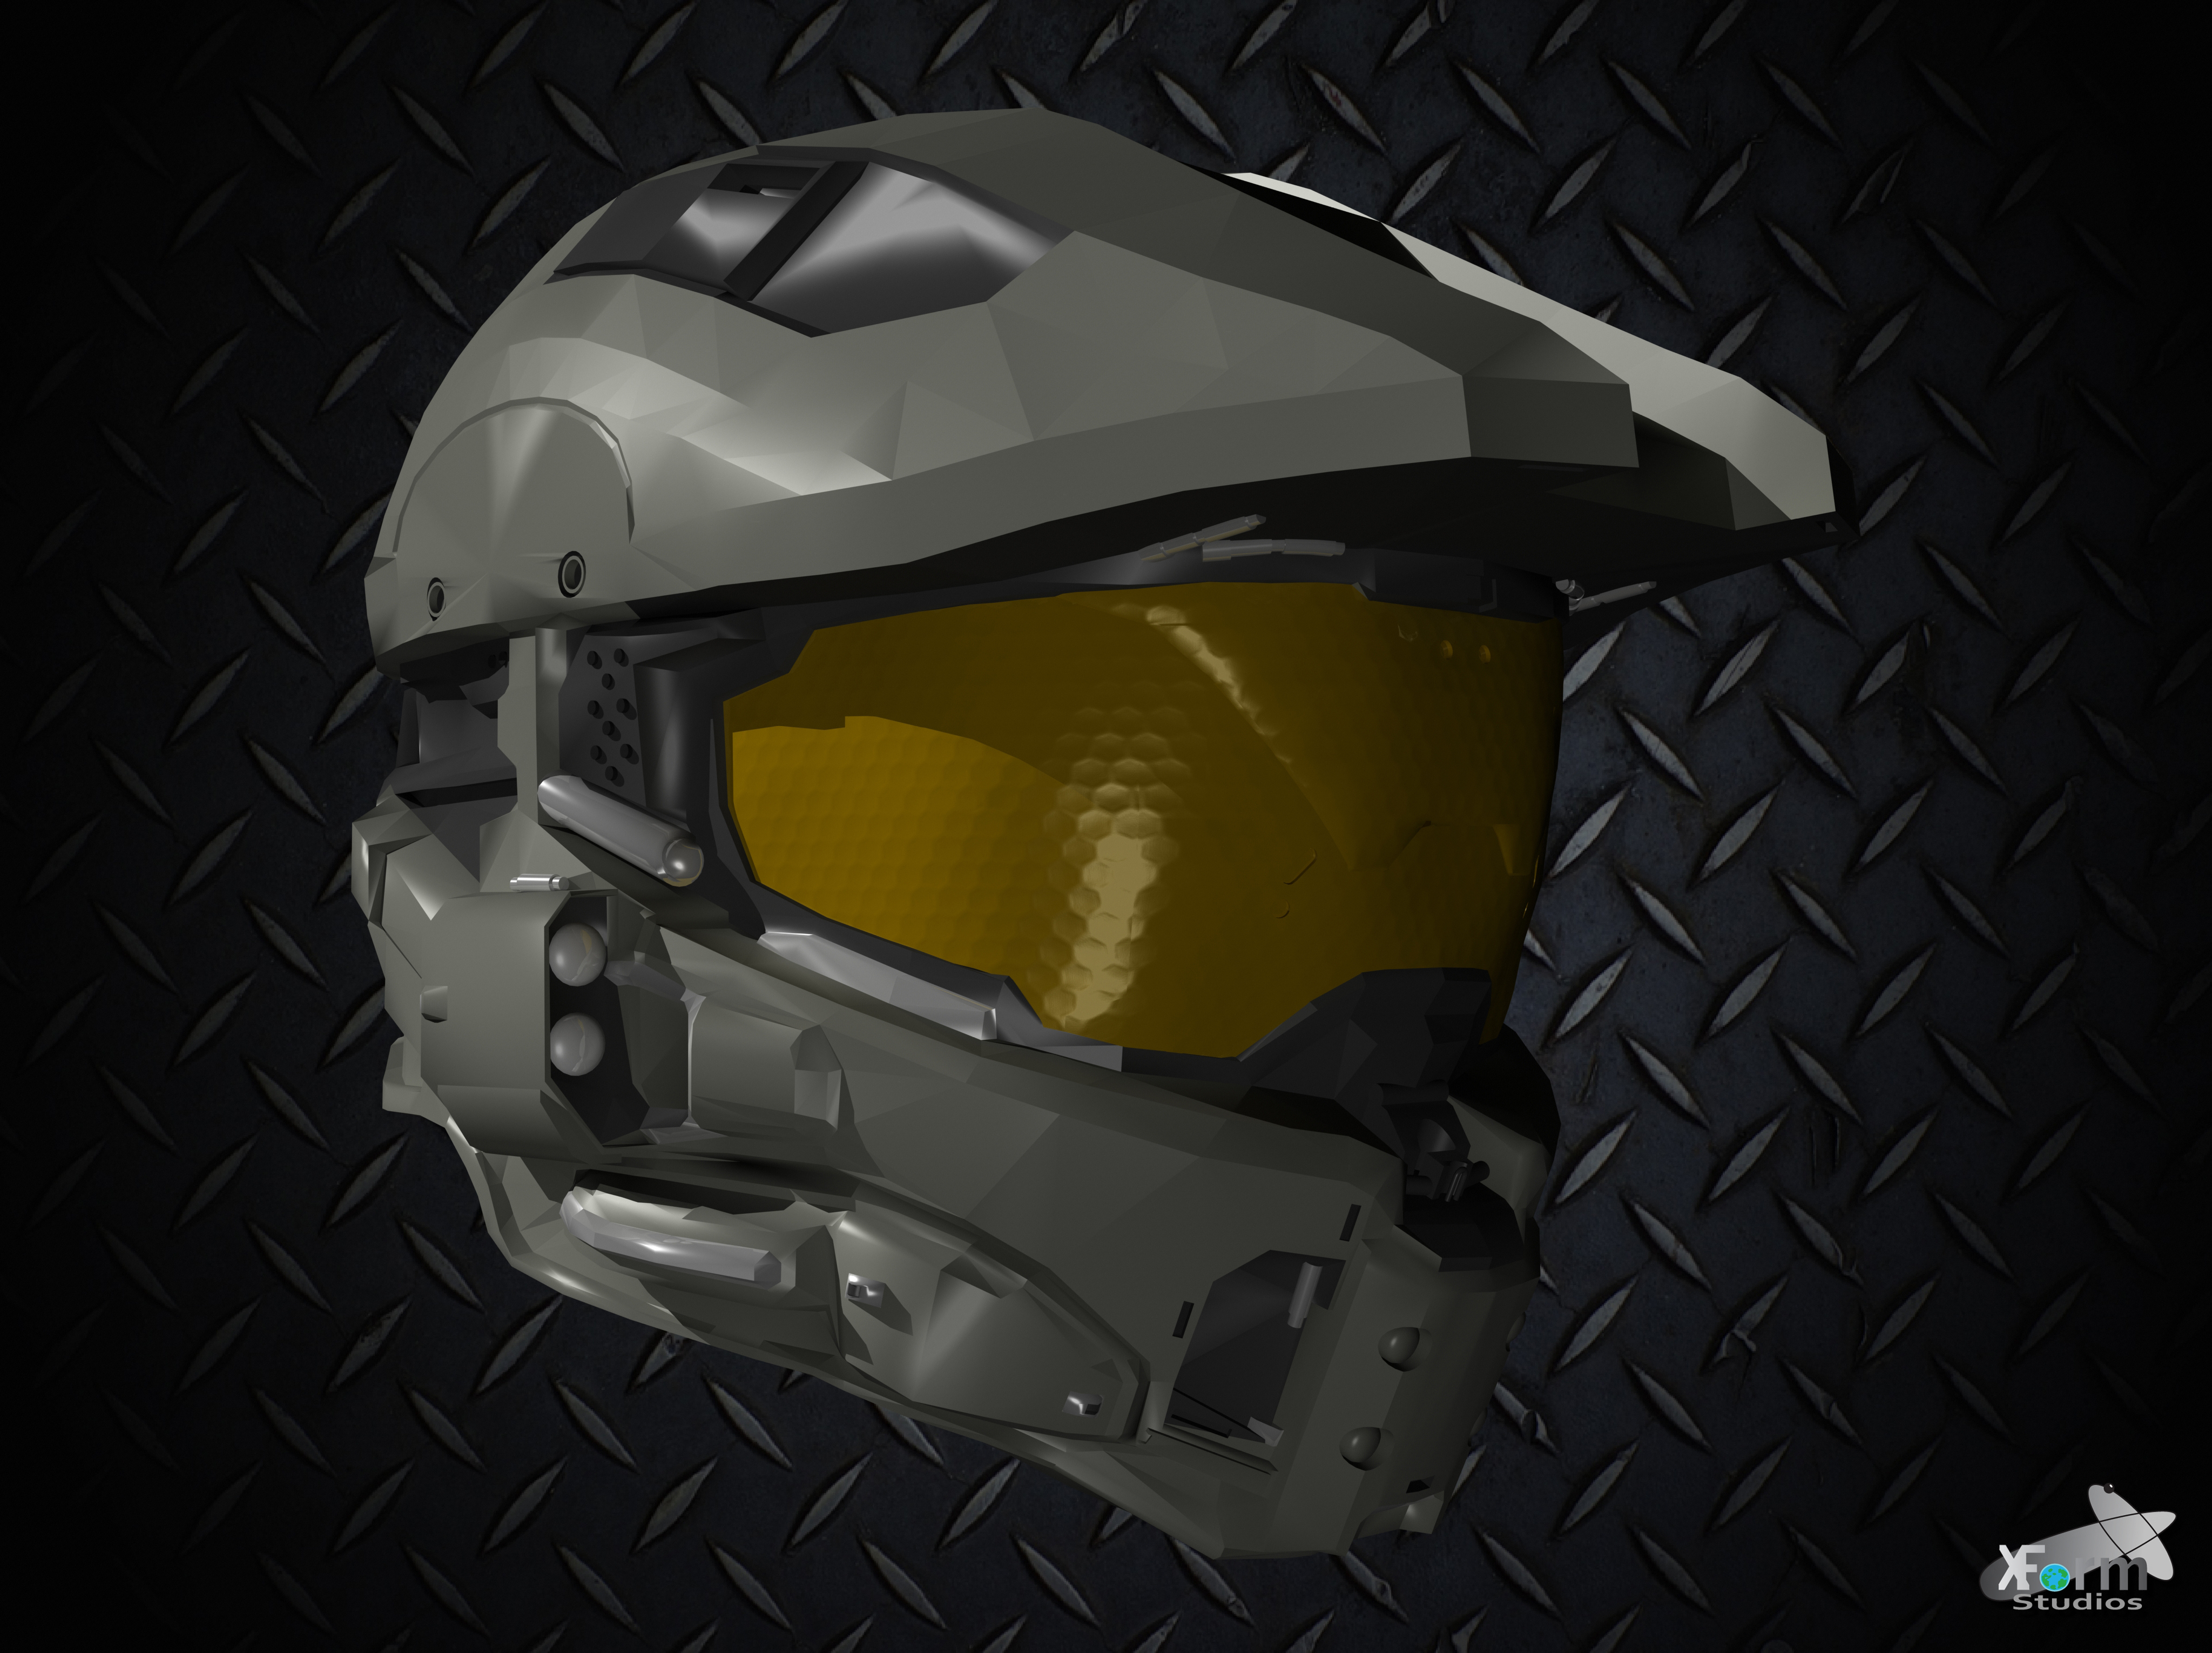 Halo 4 Master Chief's Helmet By Jamezzz92 On DeviantArt